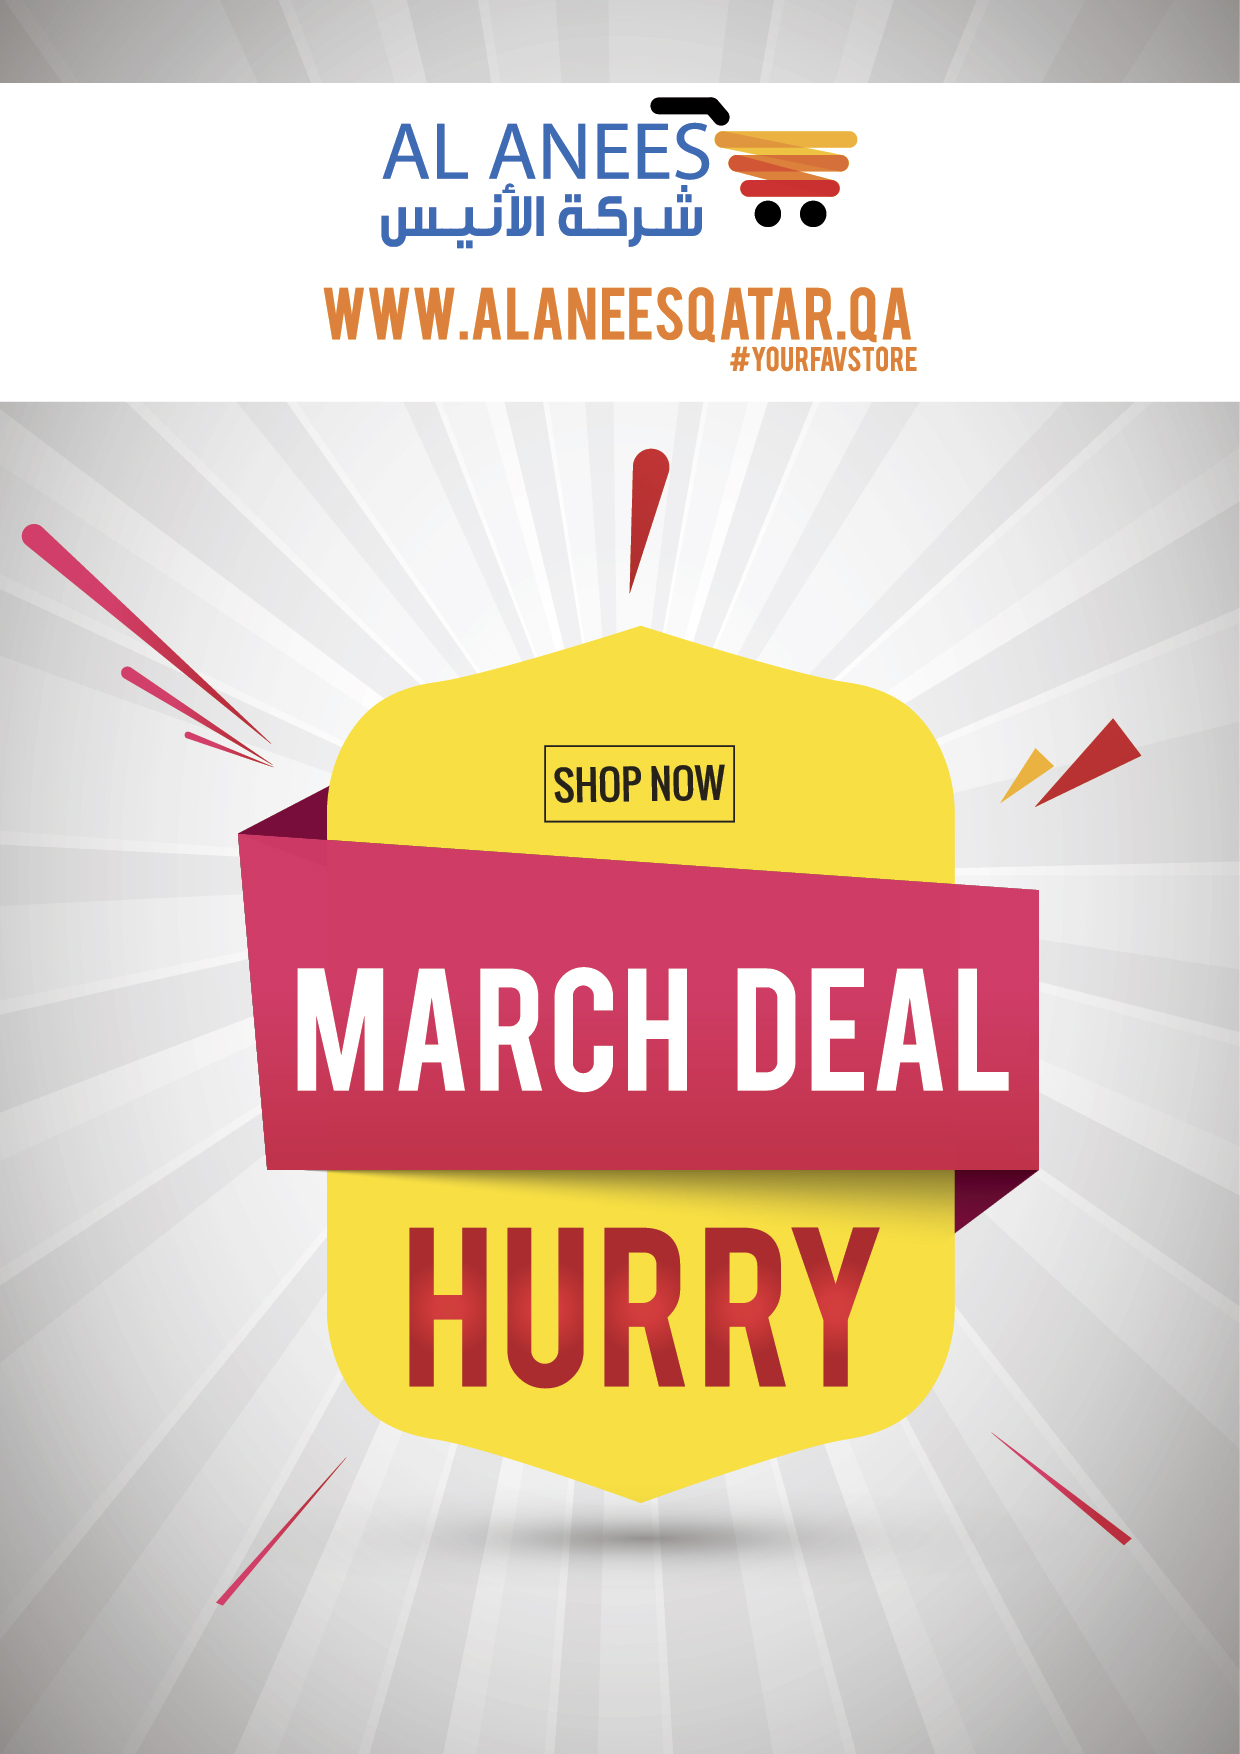 AlaneesQatar Promotions and offers in Qatar